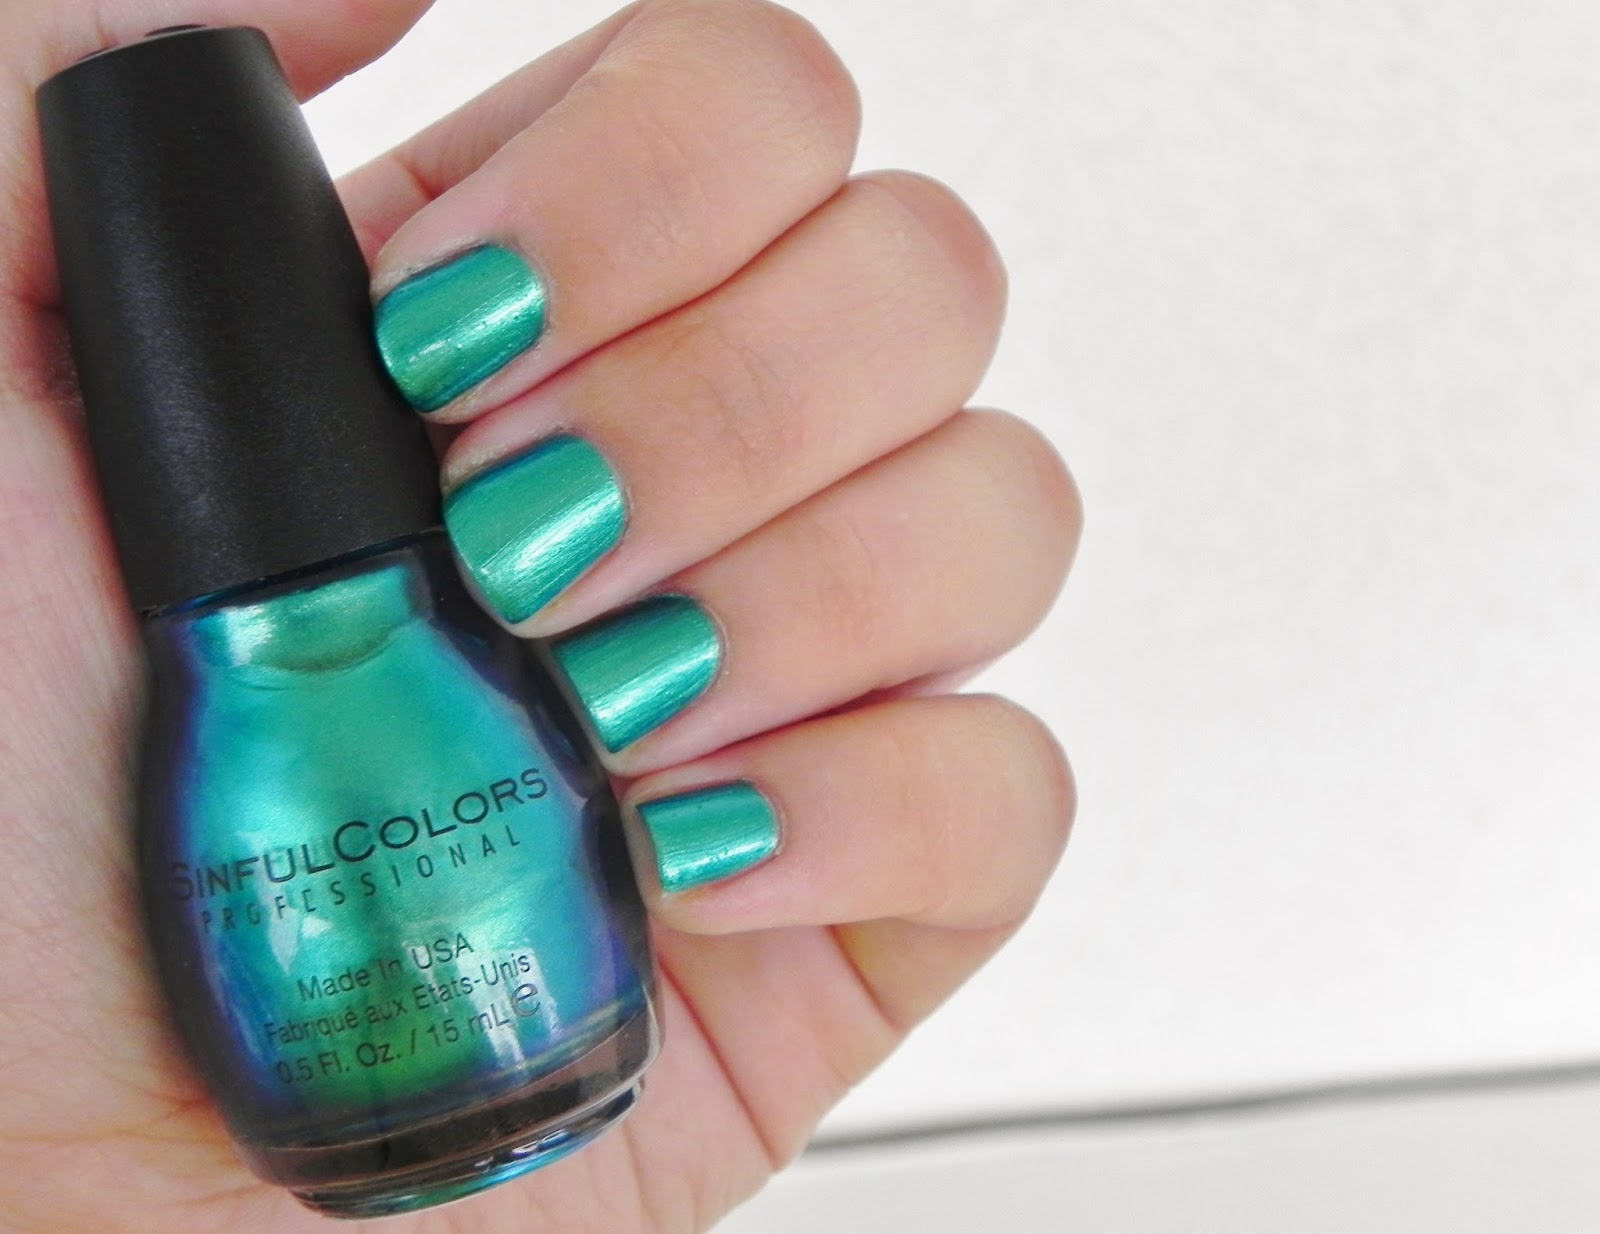 Notd Gorgeous Sinful Colors Nail Polish Swatch Review